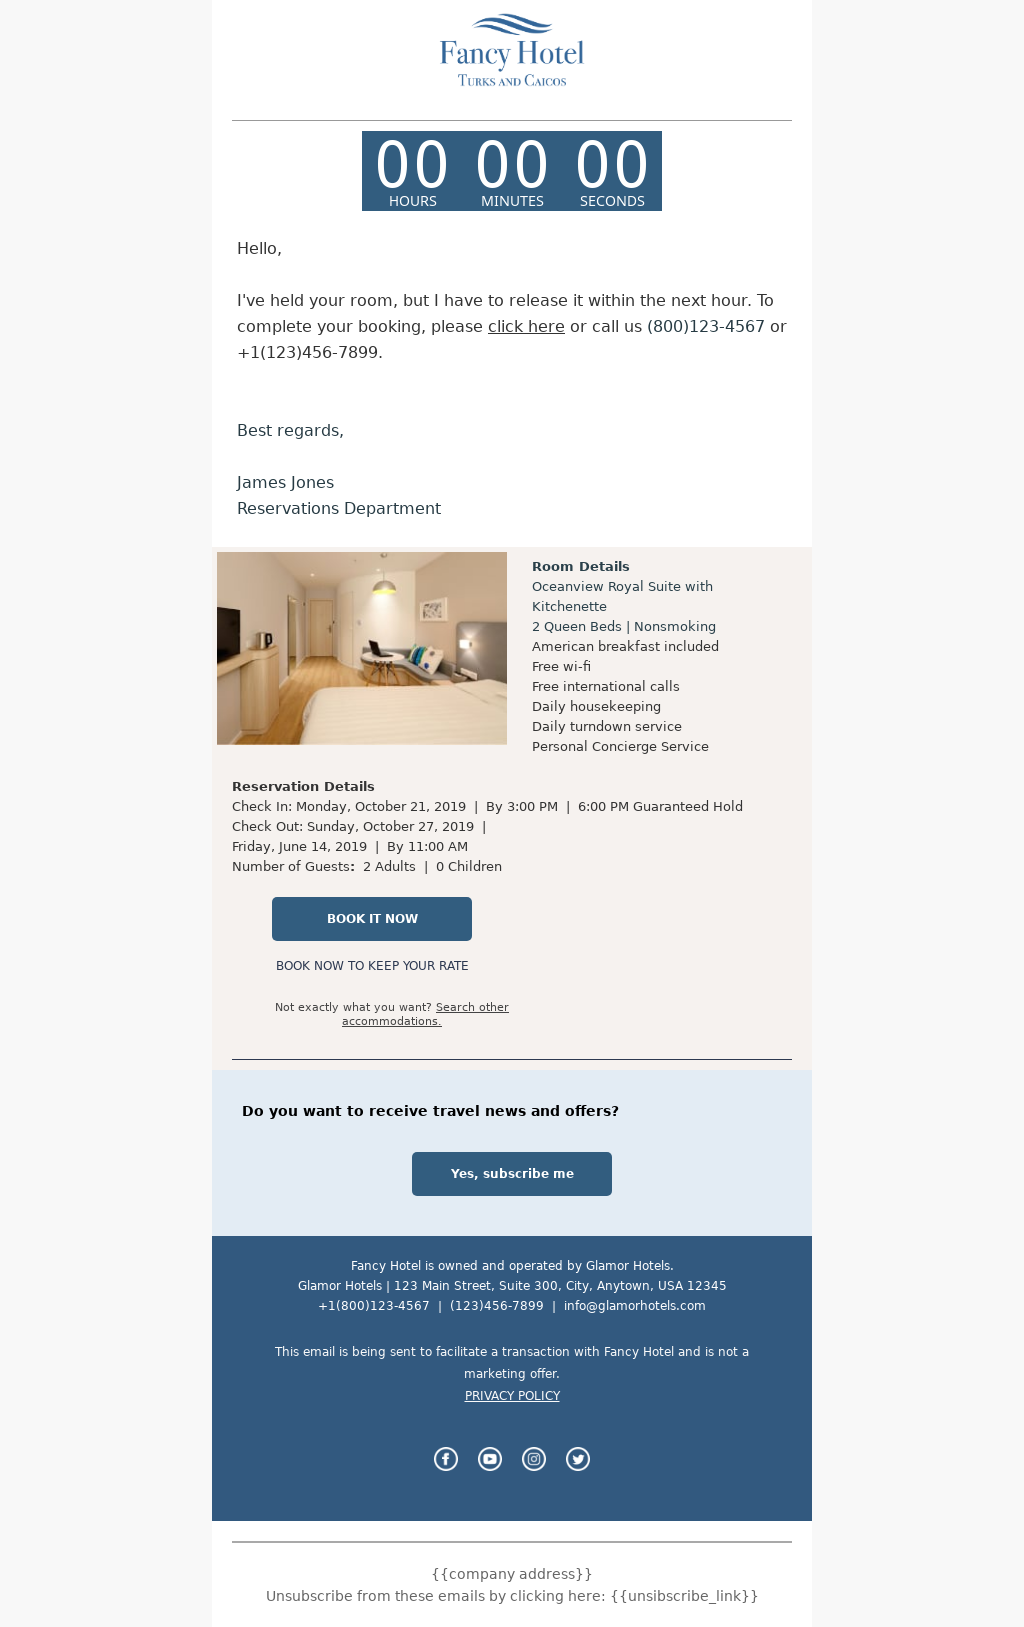 Hotel industry Cart Abandoned Email Template with countdown timer to recoup lost revenue